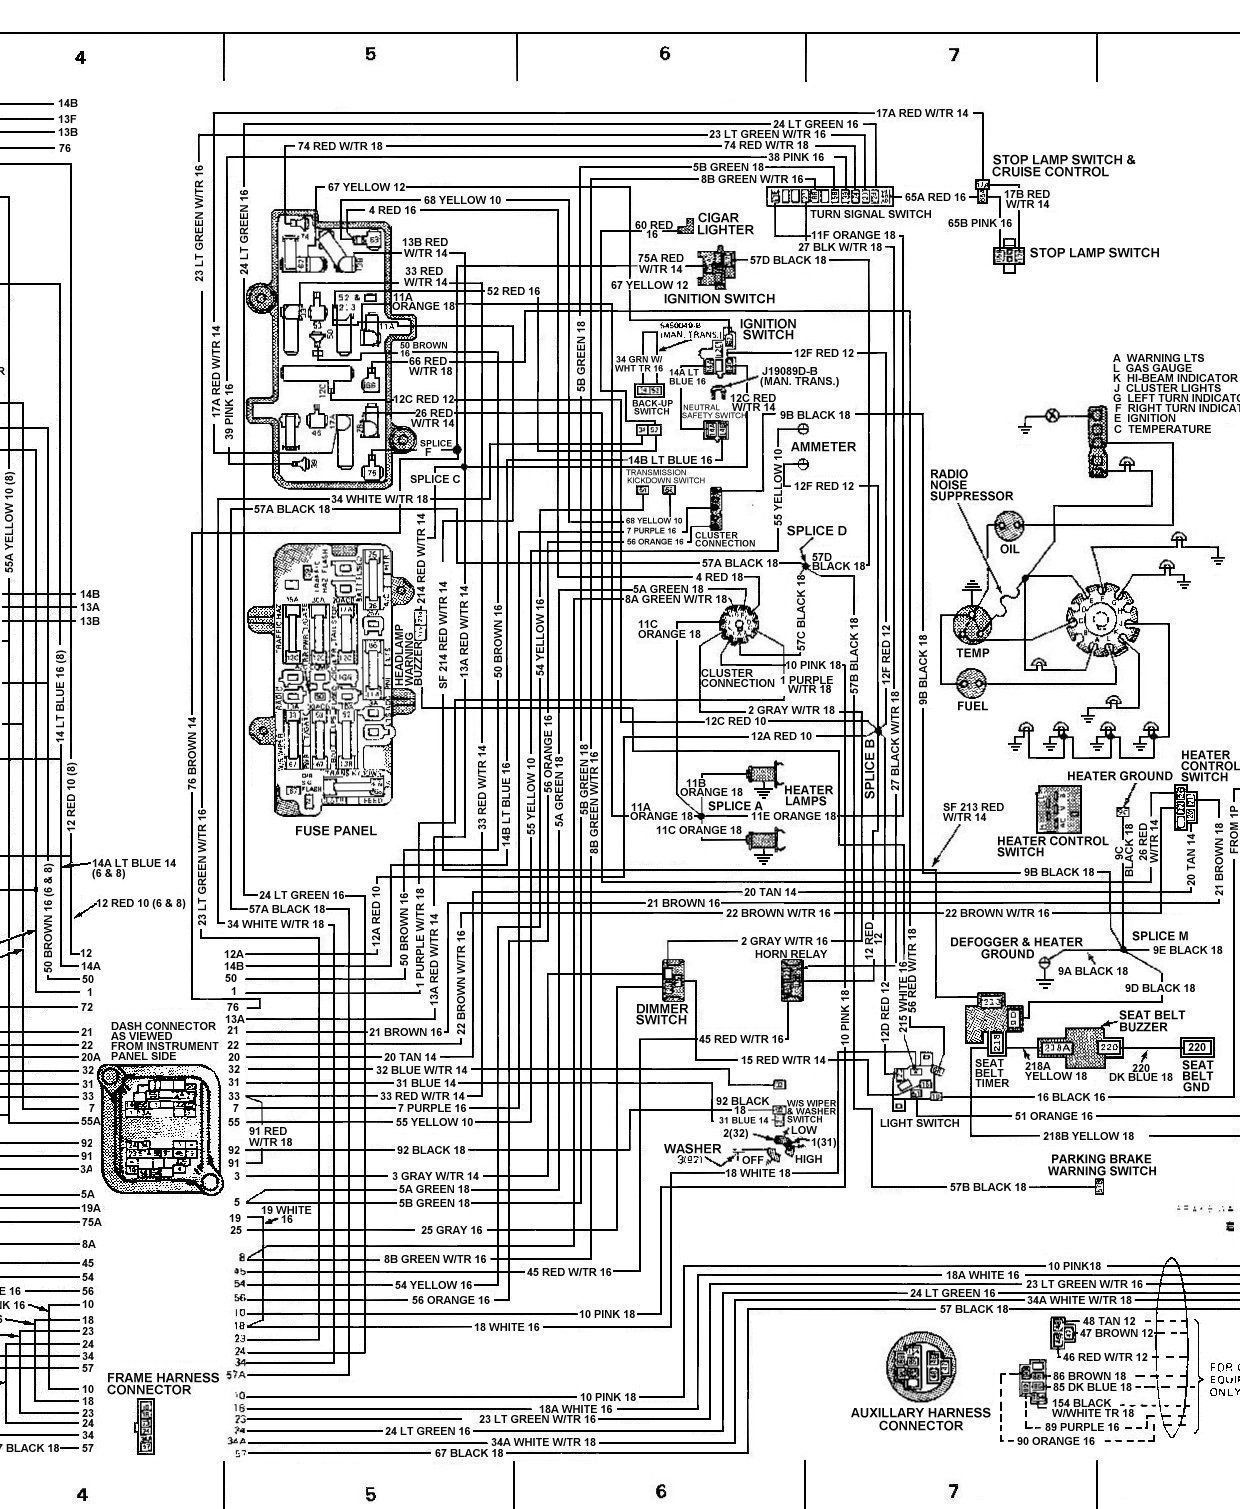 2013 Tundra Wiring Diagram further 98 Toyota 4runner Radio Wiring Diagram additionally Aswc 1 Wiring Diagram likewise Wiring Diagram 100 Series Land likewise Toyota Fj40 Wiring Diagram. on toyota fj radio wire diagram